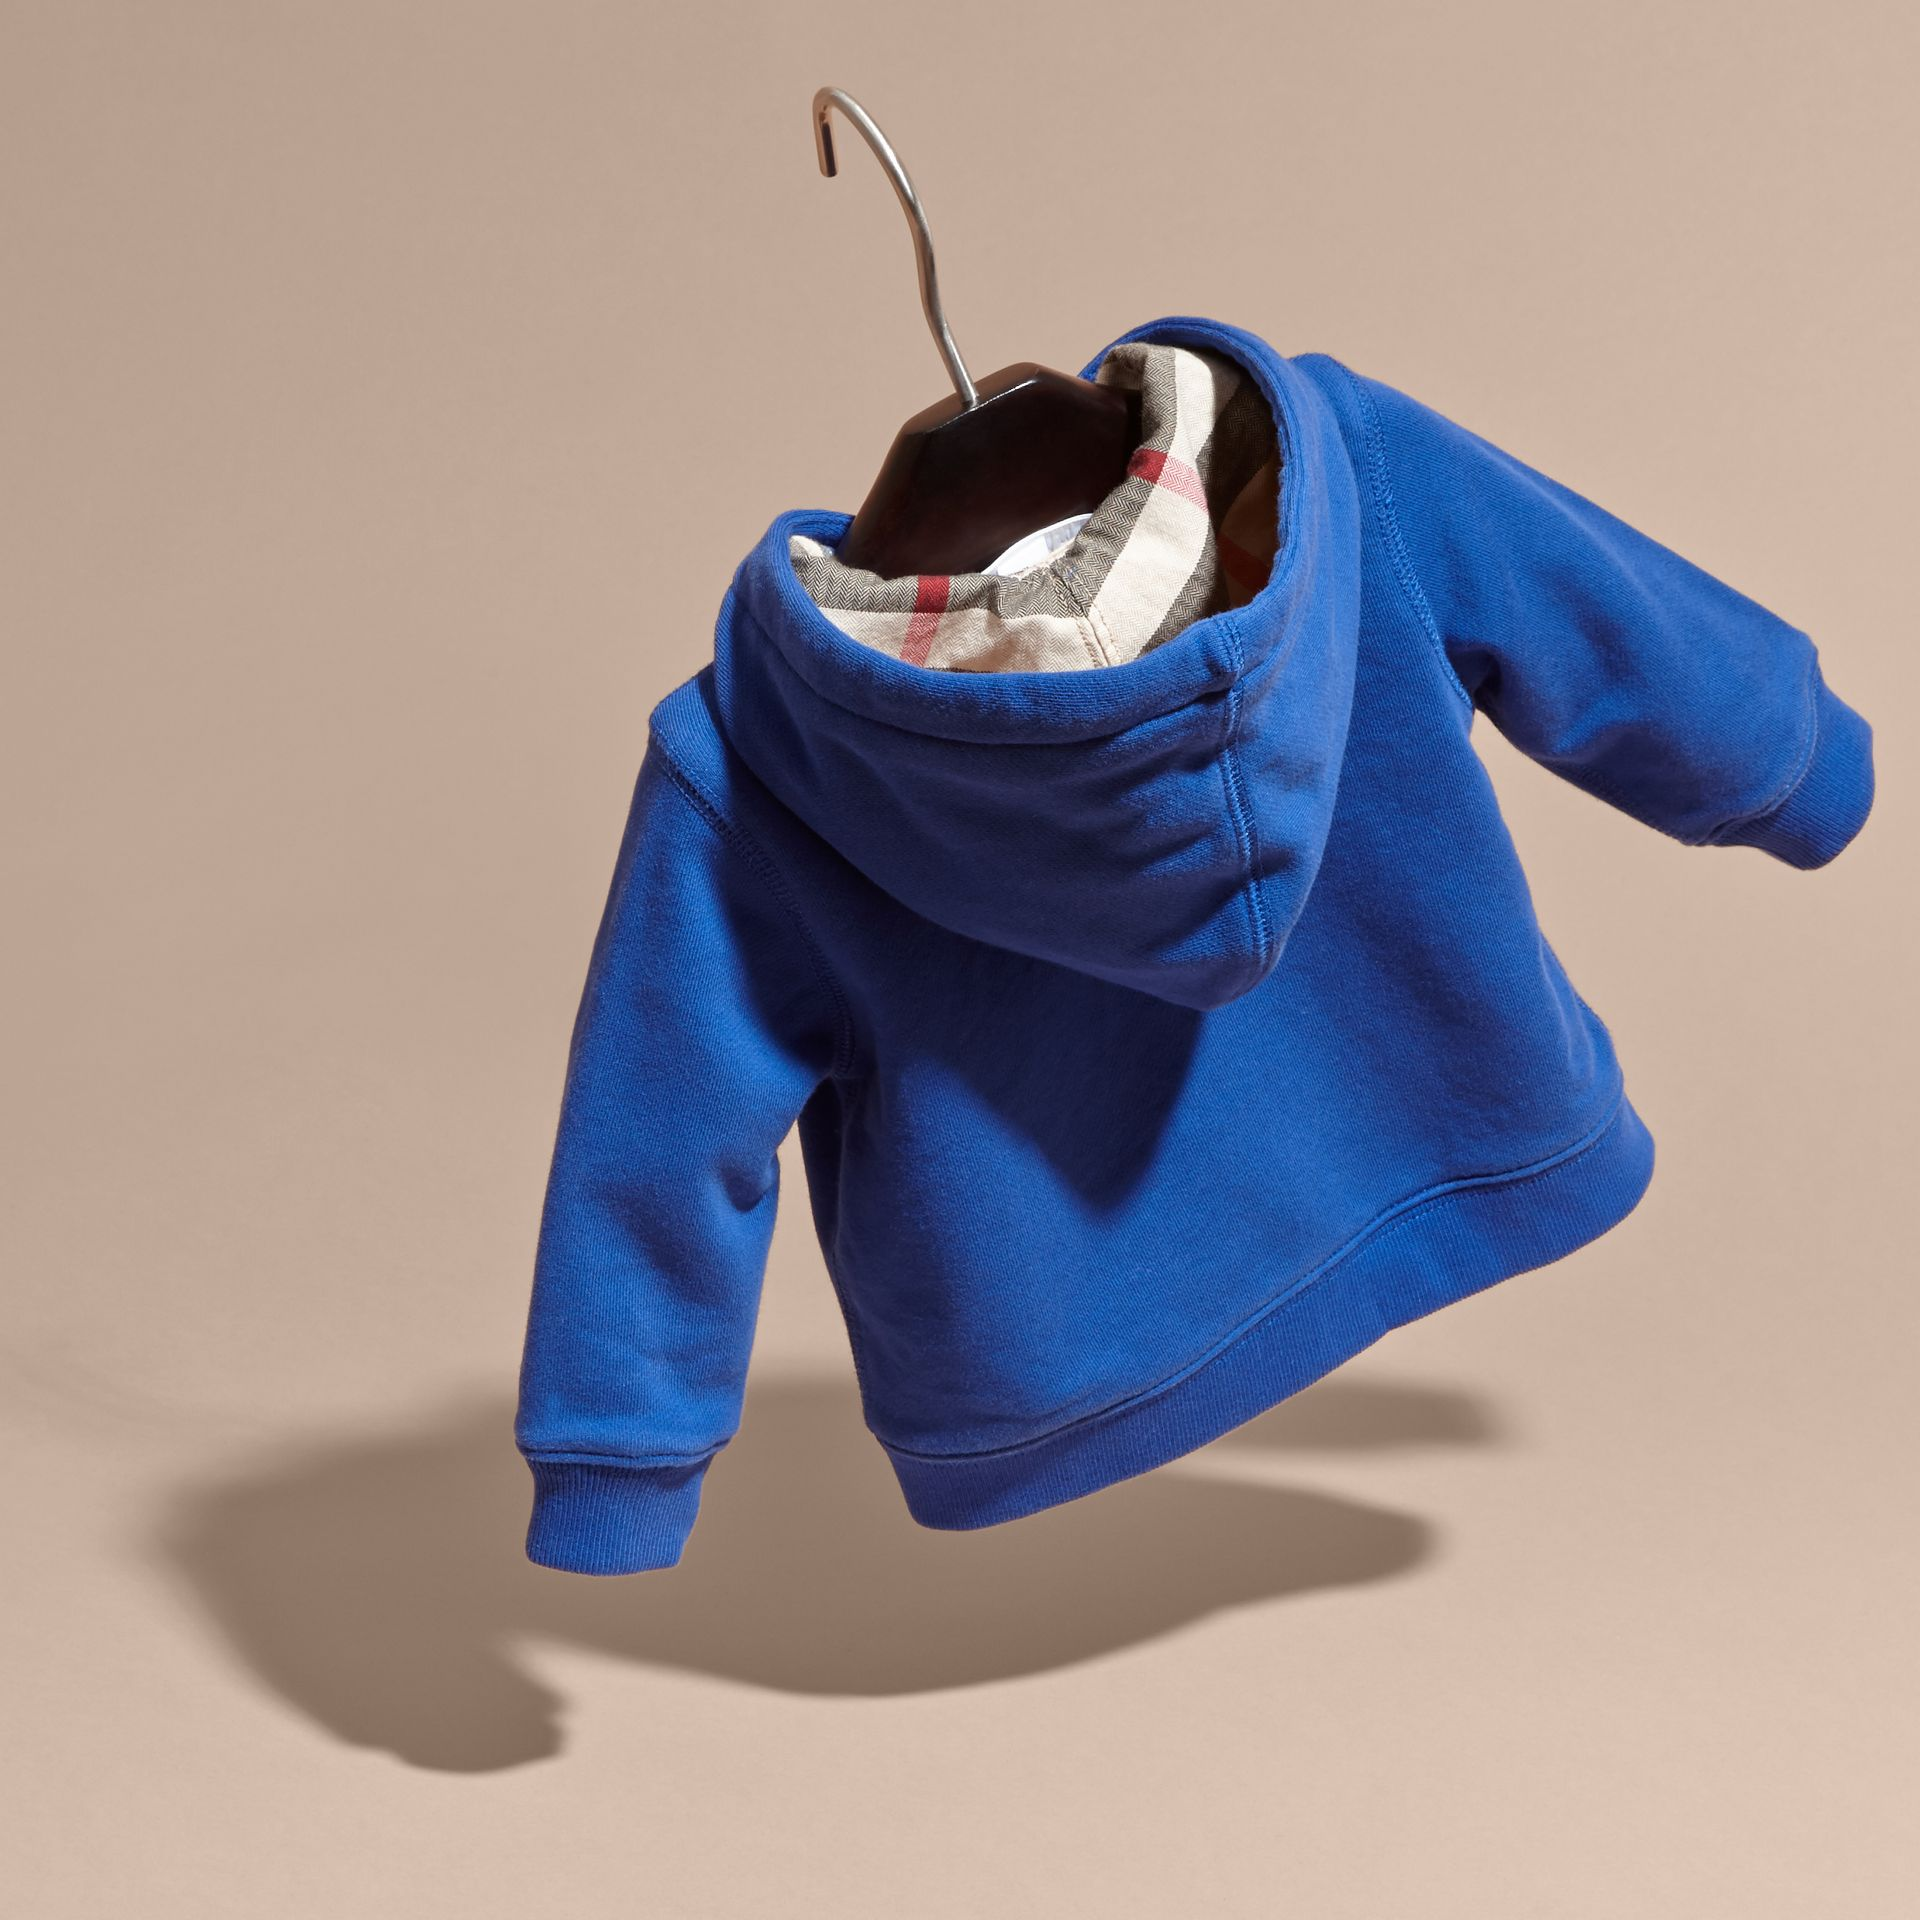 Brilliant blue Check Detail Hooded Cotton Top Brilliant Blue - gallery image 4